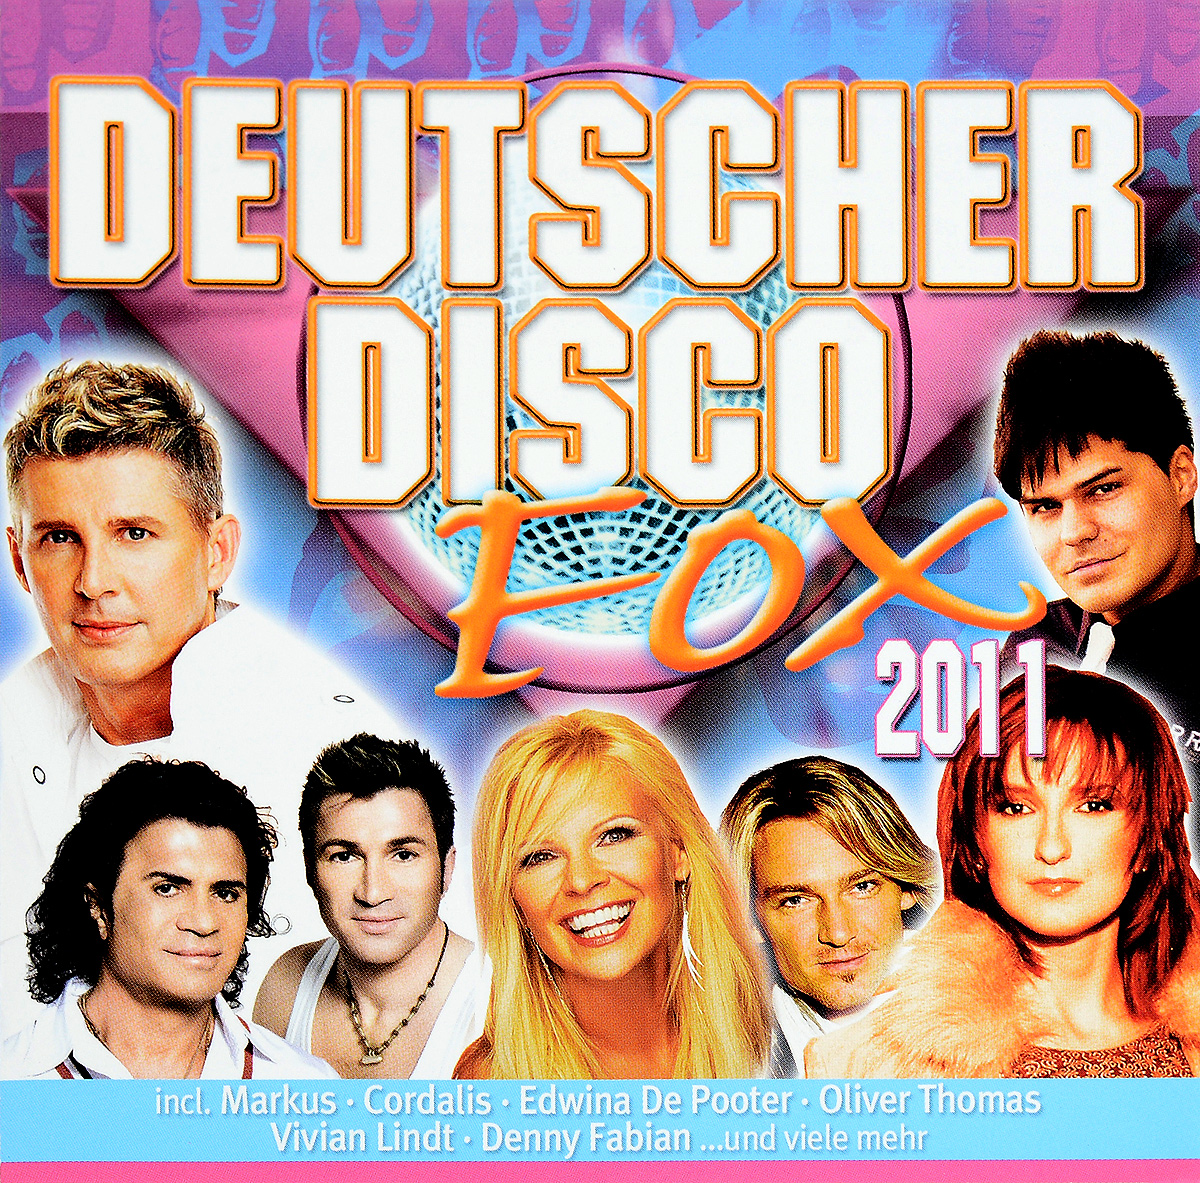 Deutscher Disco Fox 2011 (2 CD) цена 2017